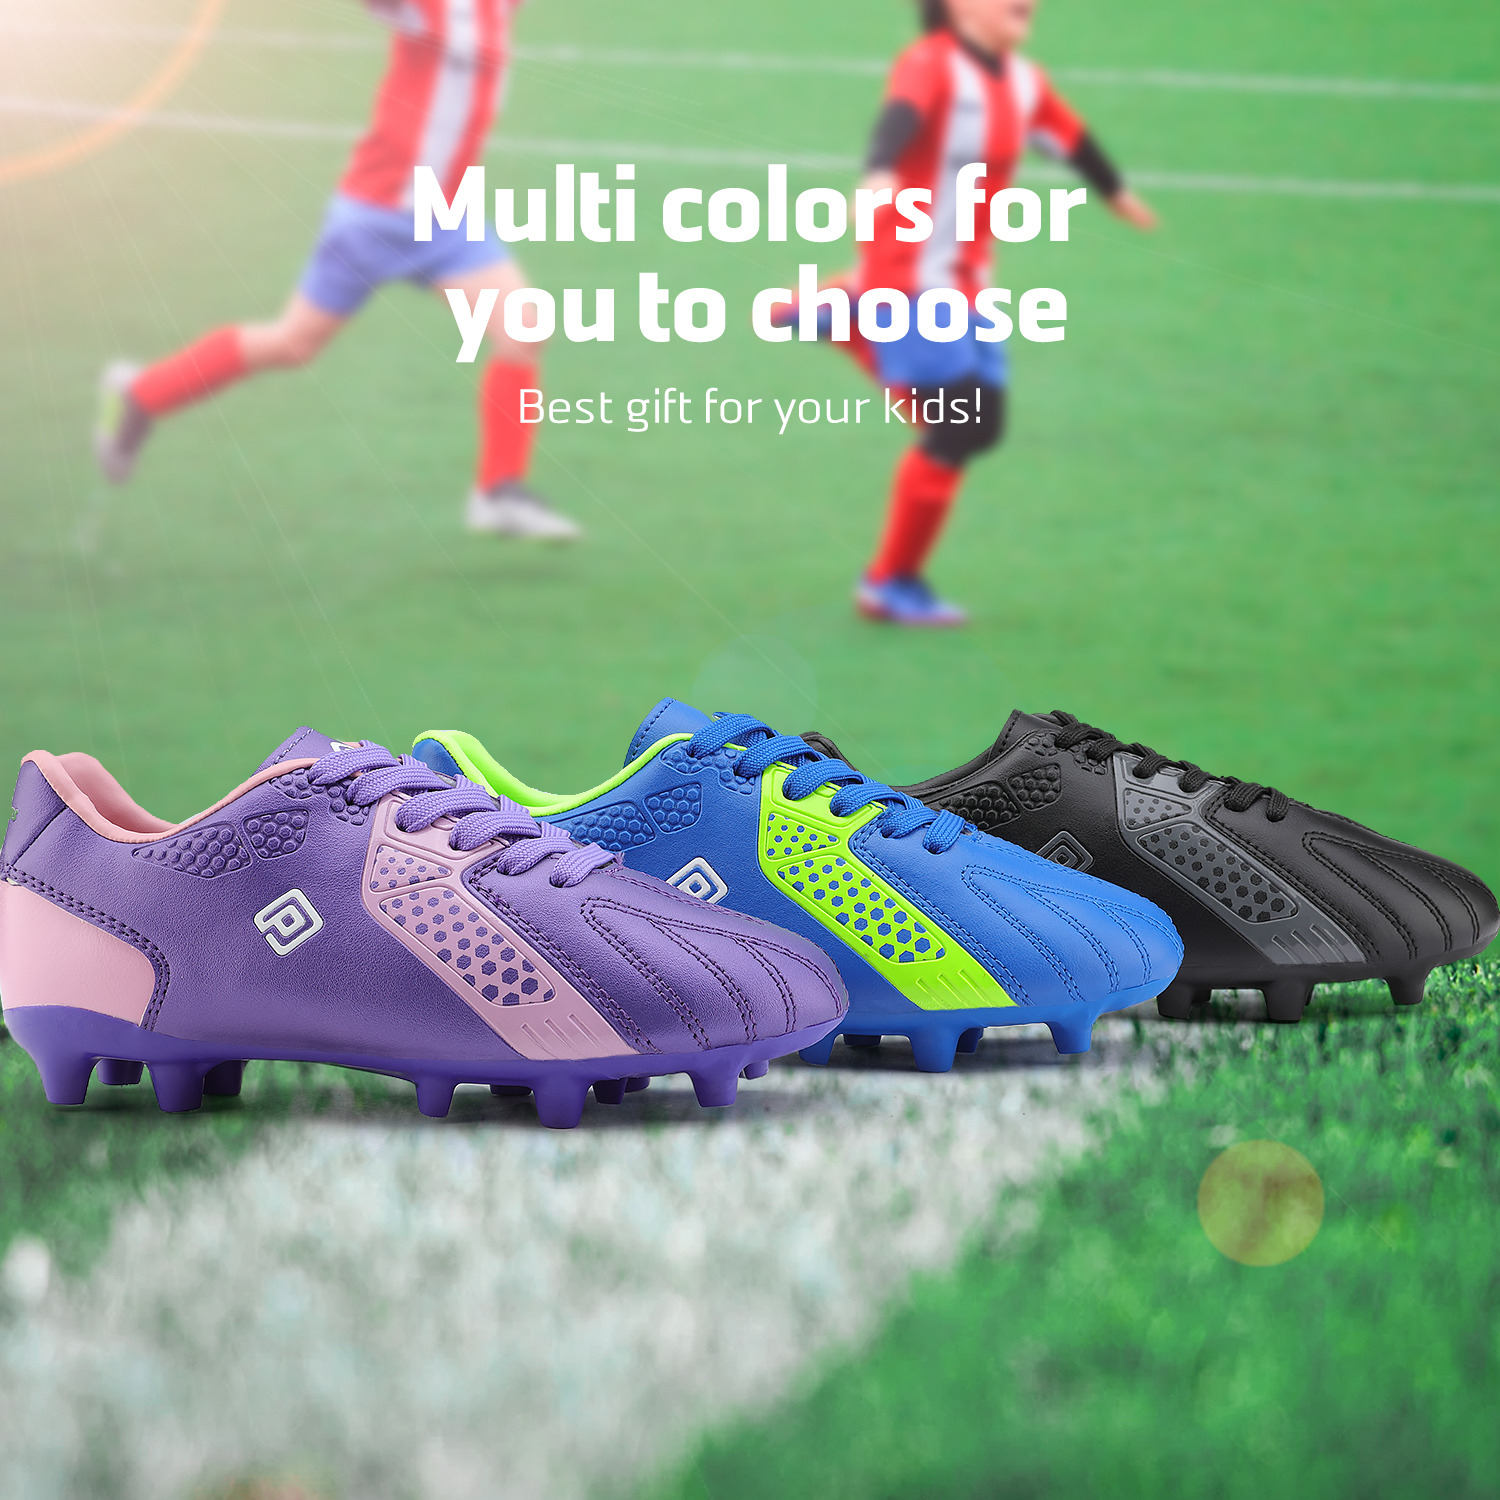 miniature 19 - Men's Kids Football Chaussures Crampons Football Indoor Sports Baskets Sneakers Fashion